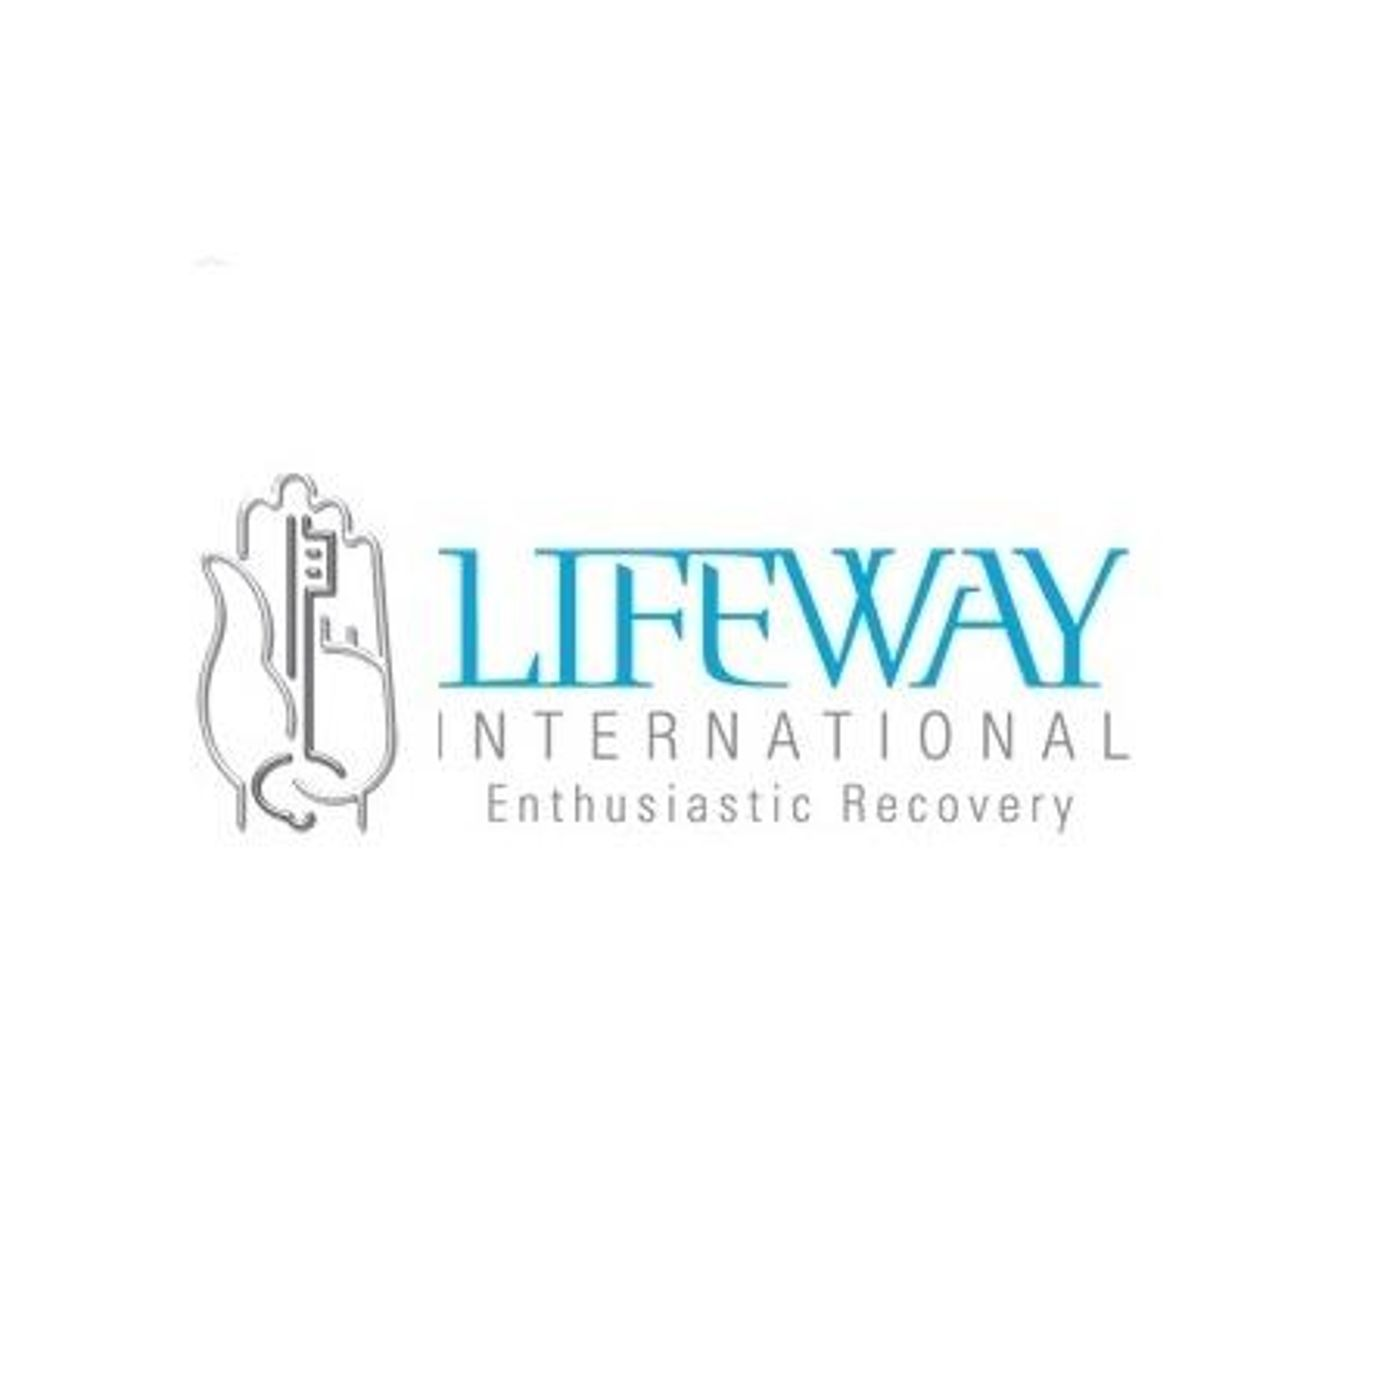 Mental Health News Radio - Enthusiastic Recovery: An Interview with Bill Prasad of Lifeway International